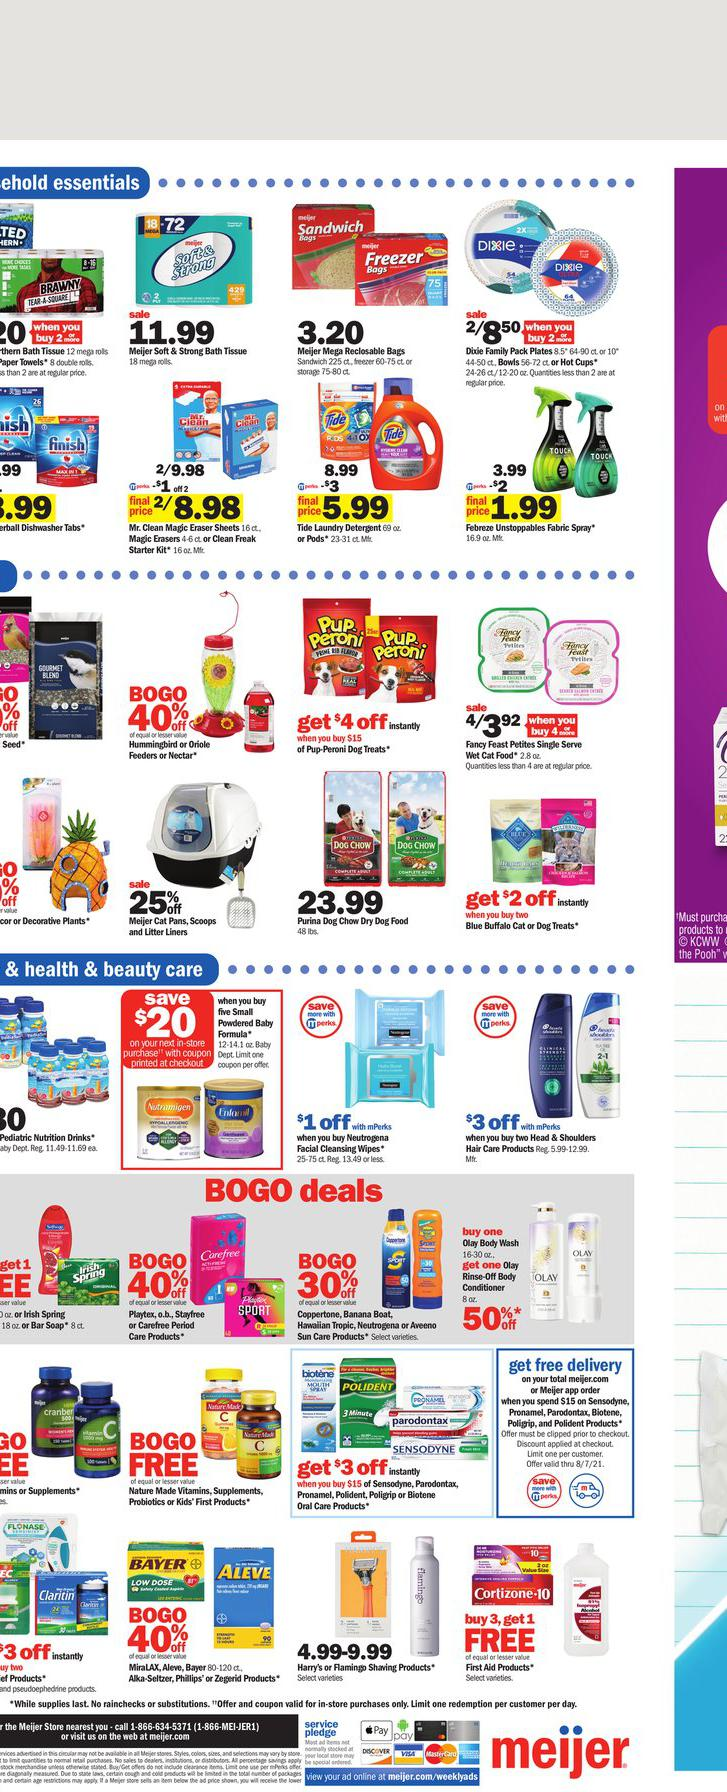 01.08.2021 Meijer ad 14. page